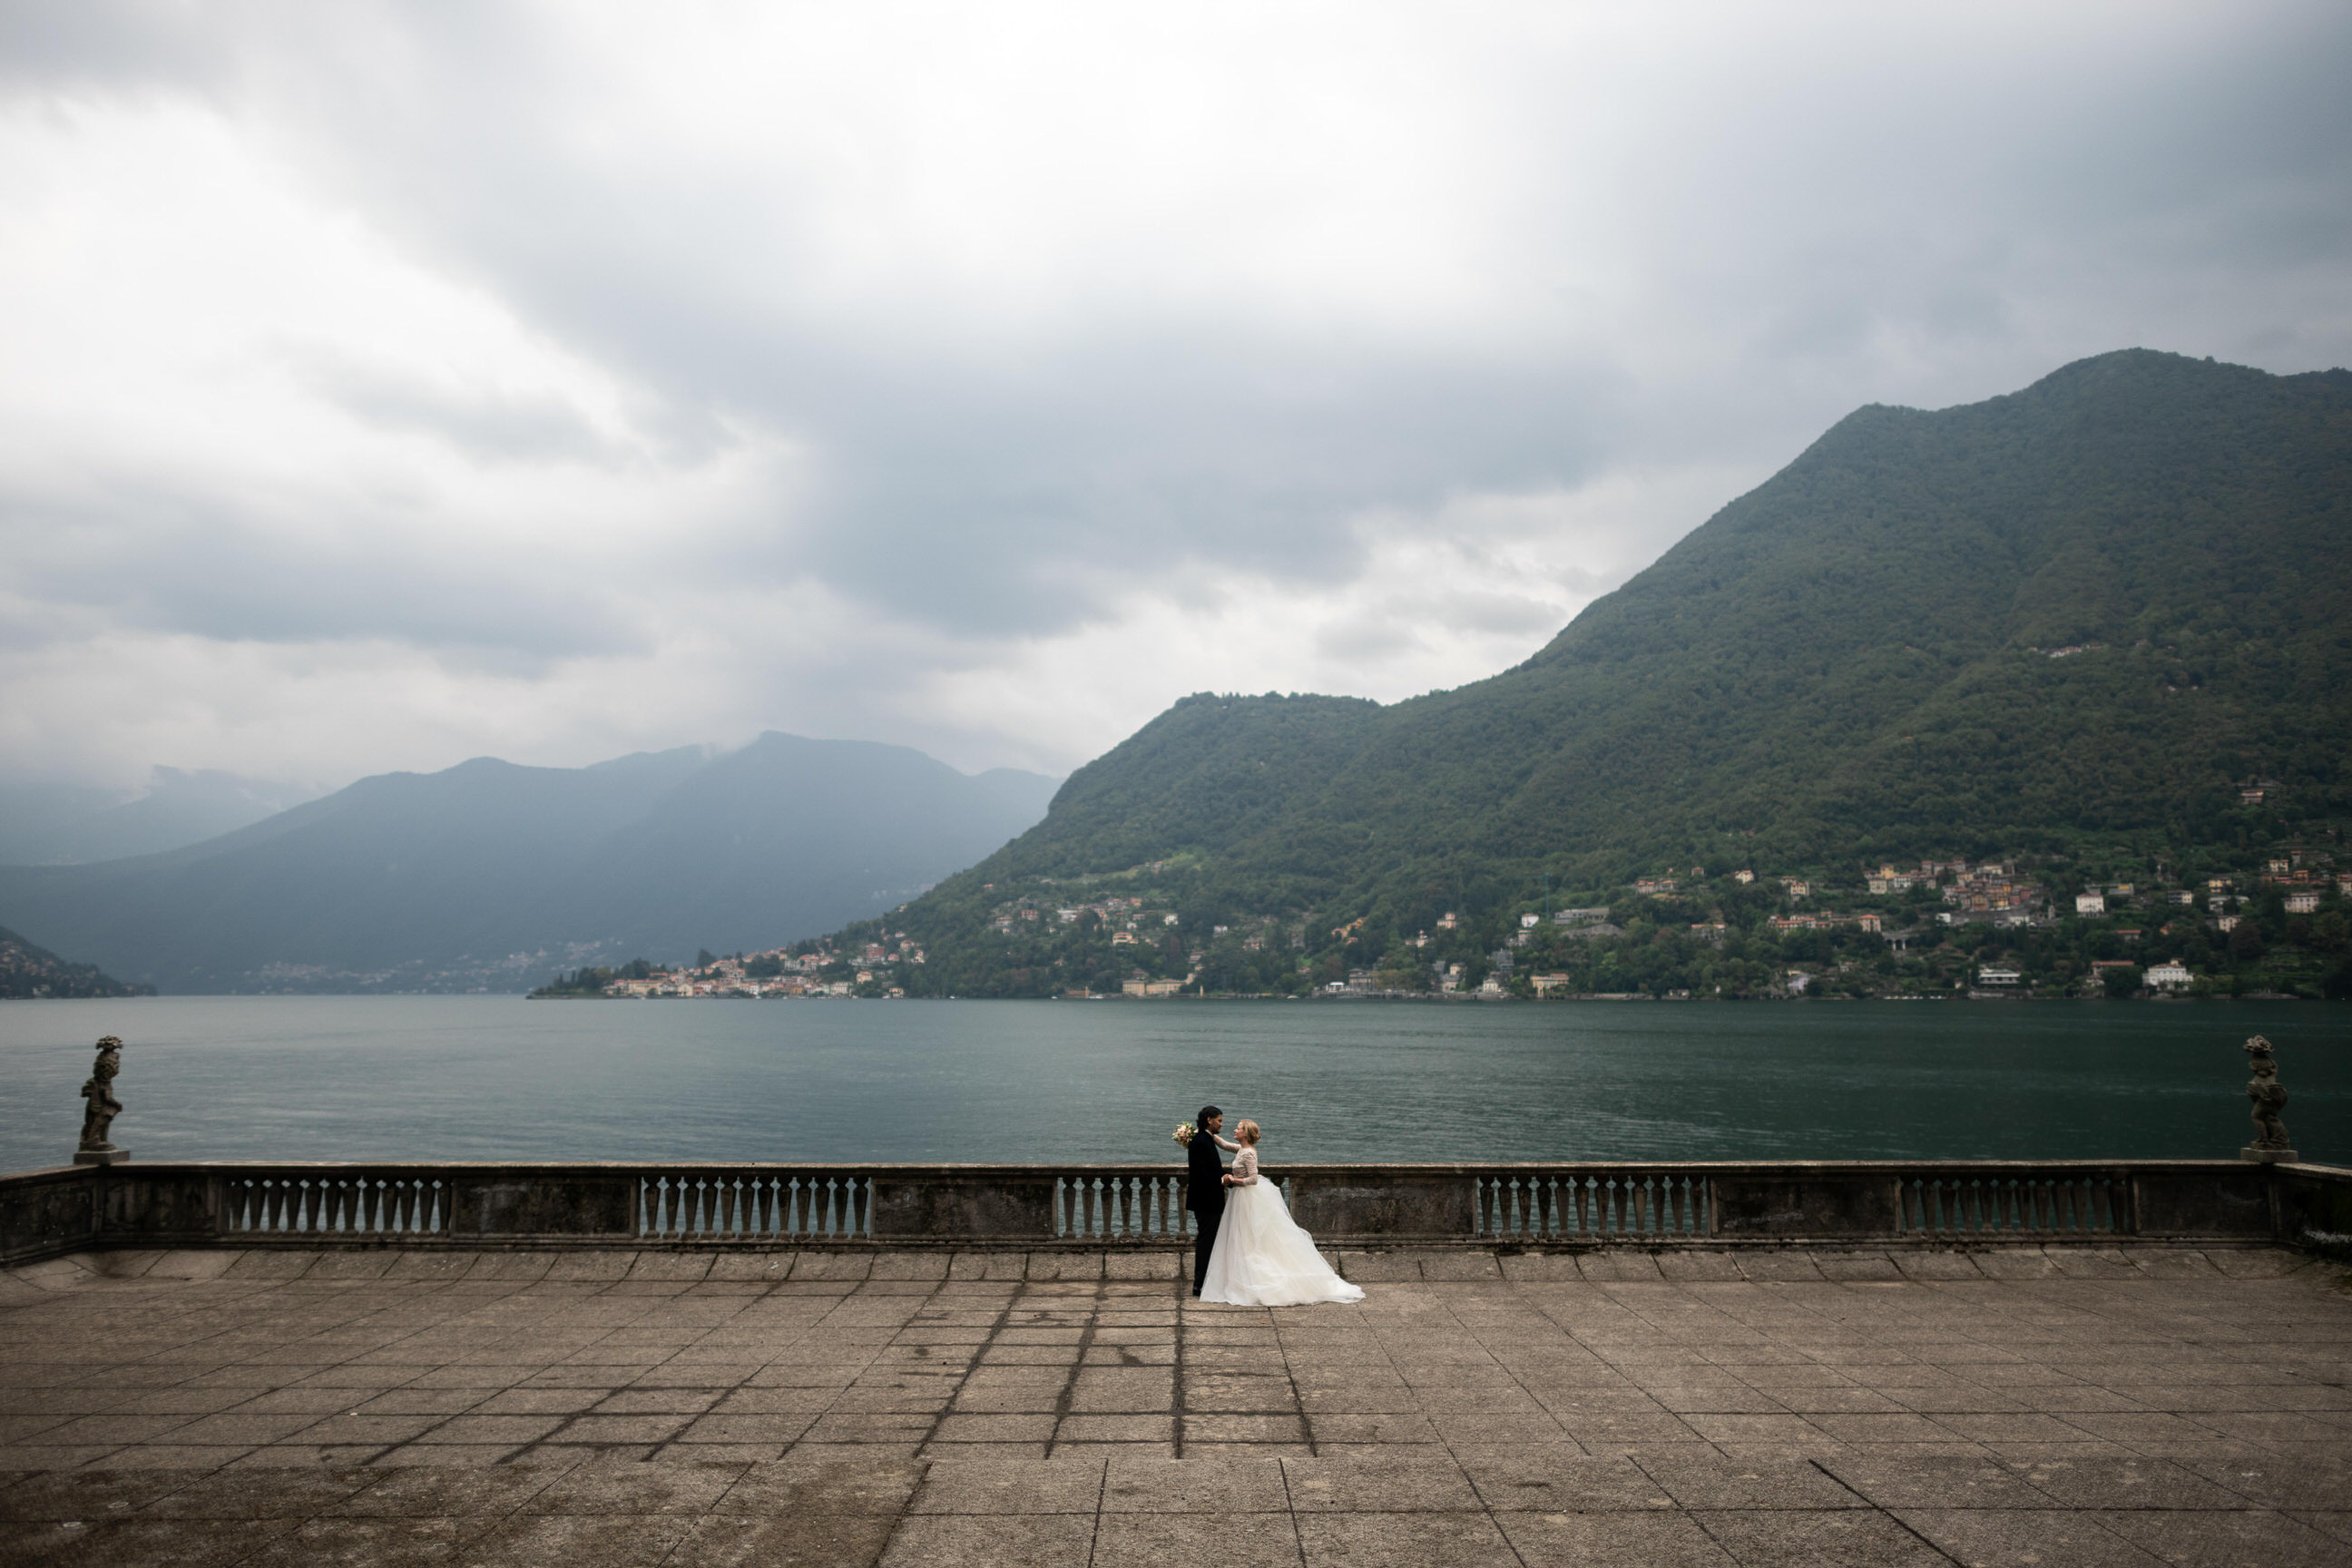 Cinematic portrait of a bride and groom from a distance on a terrace of Villa Pizzo with the hills and lake of Lake Como Italy in the background, shot by luxury wedding photographer Francesco Bognin